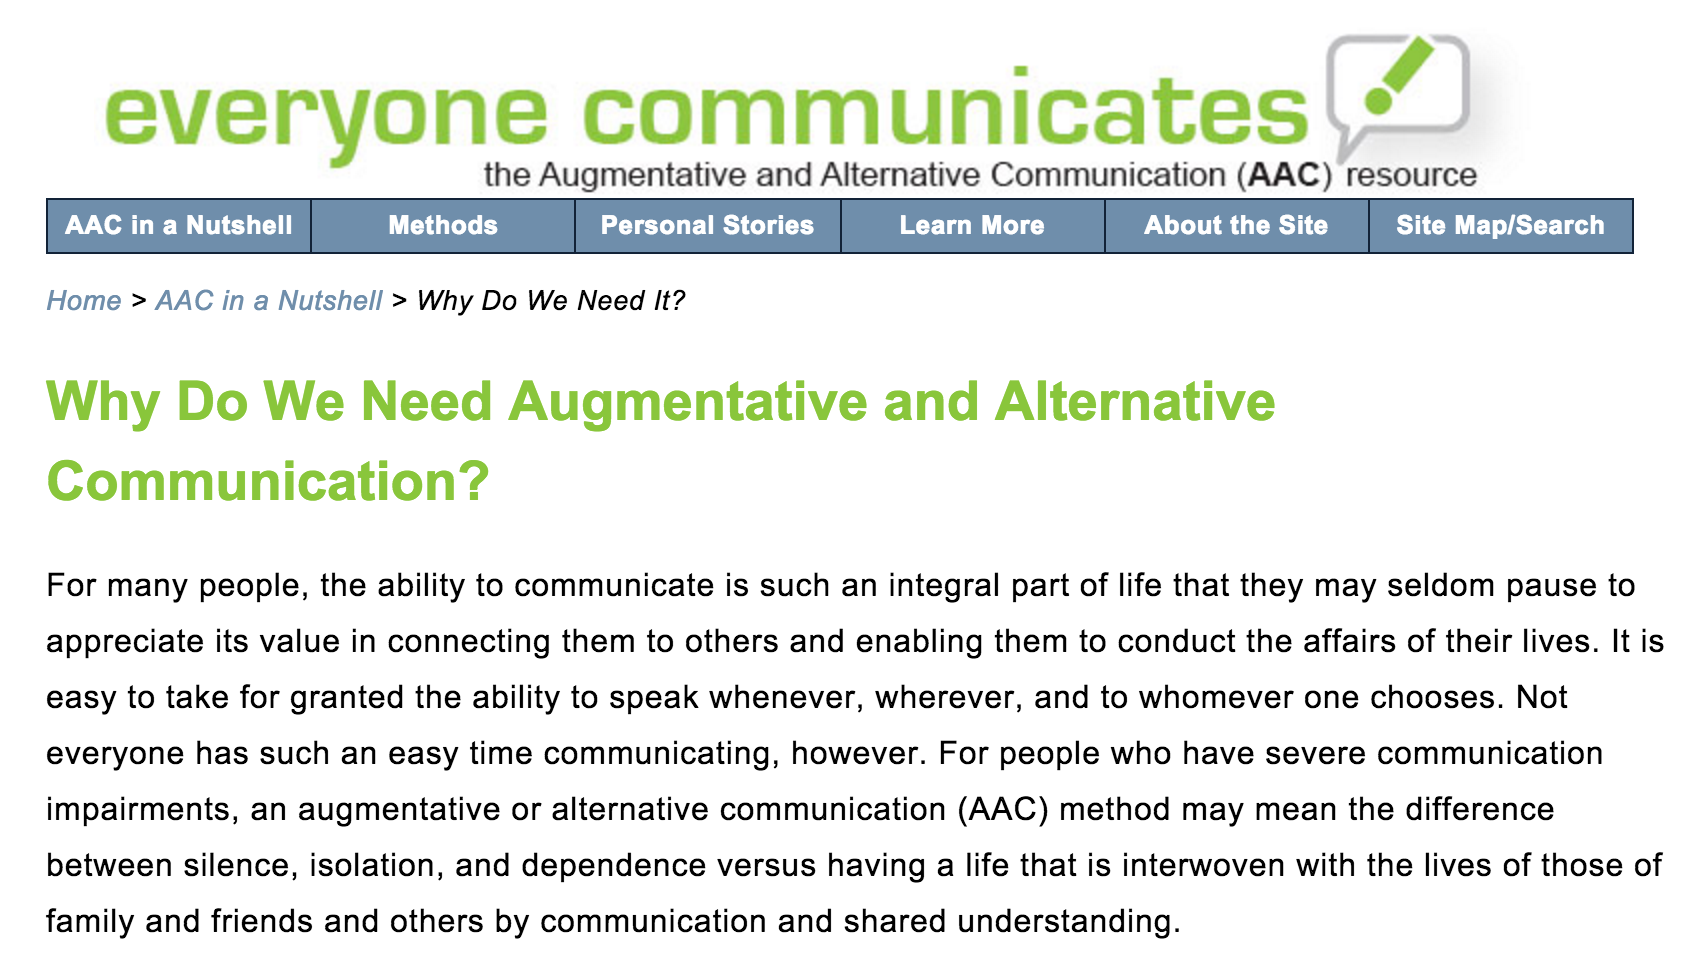 Why do we need augmentative and alternative communication from